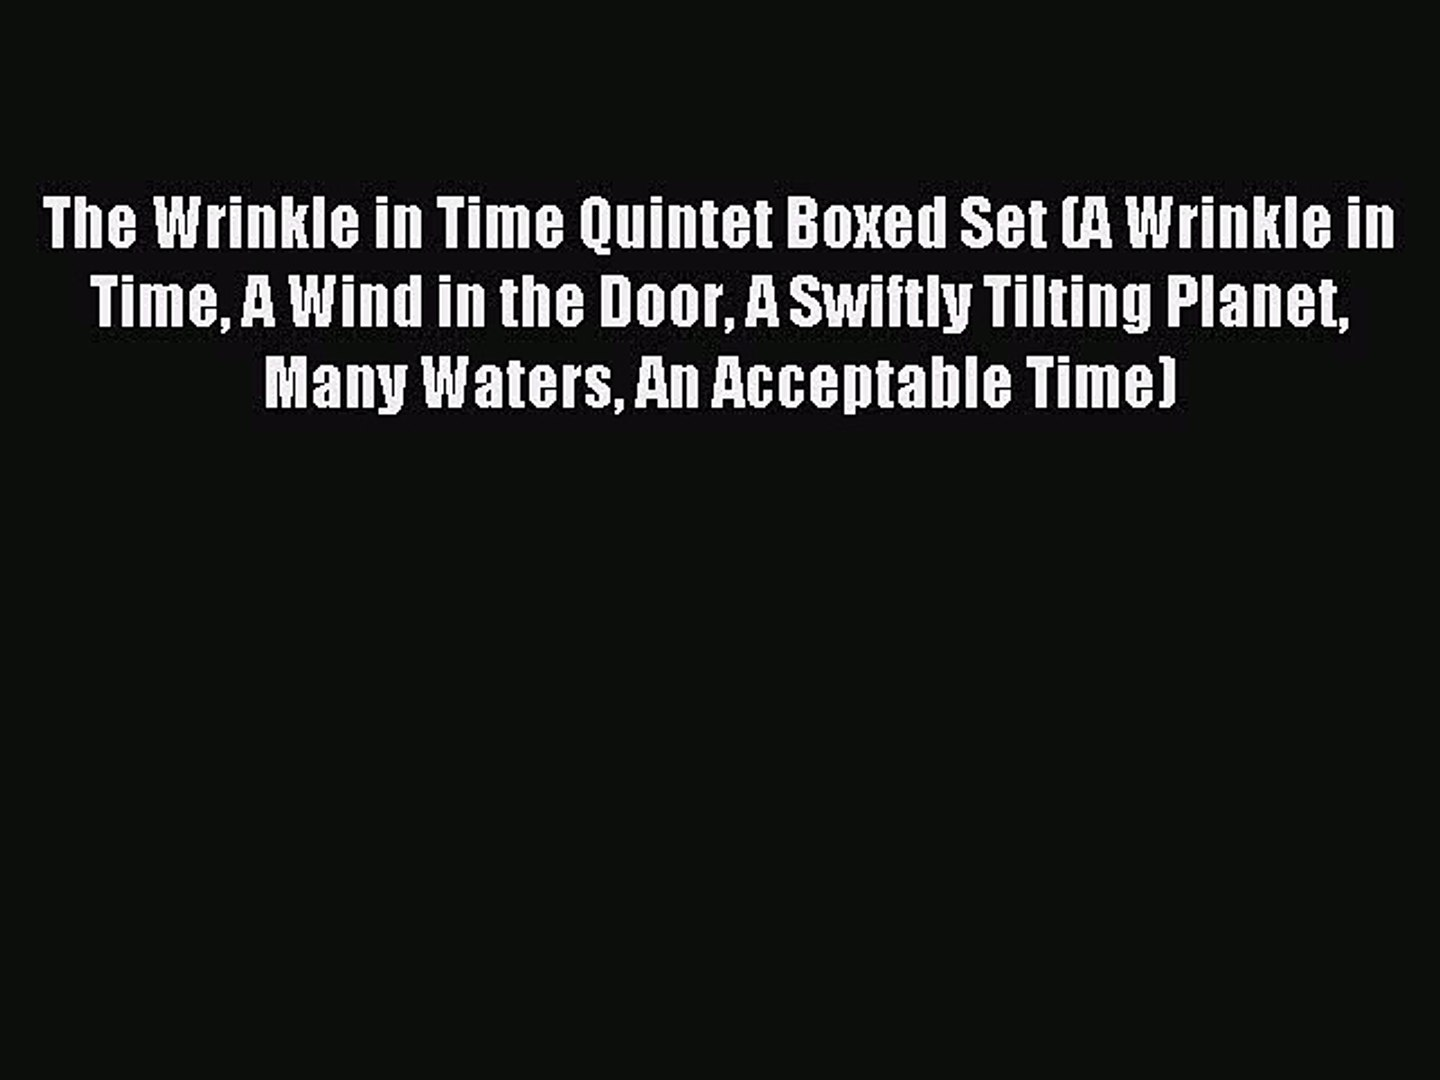 [Download PDF] The Wrinkle in Time Quintet Boxed Set (A Wrinkle in Time A Wind in the Door